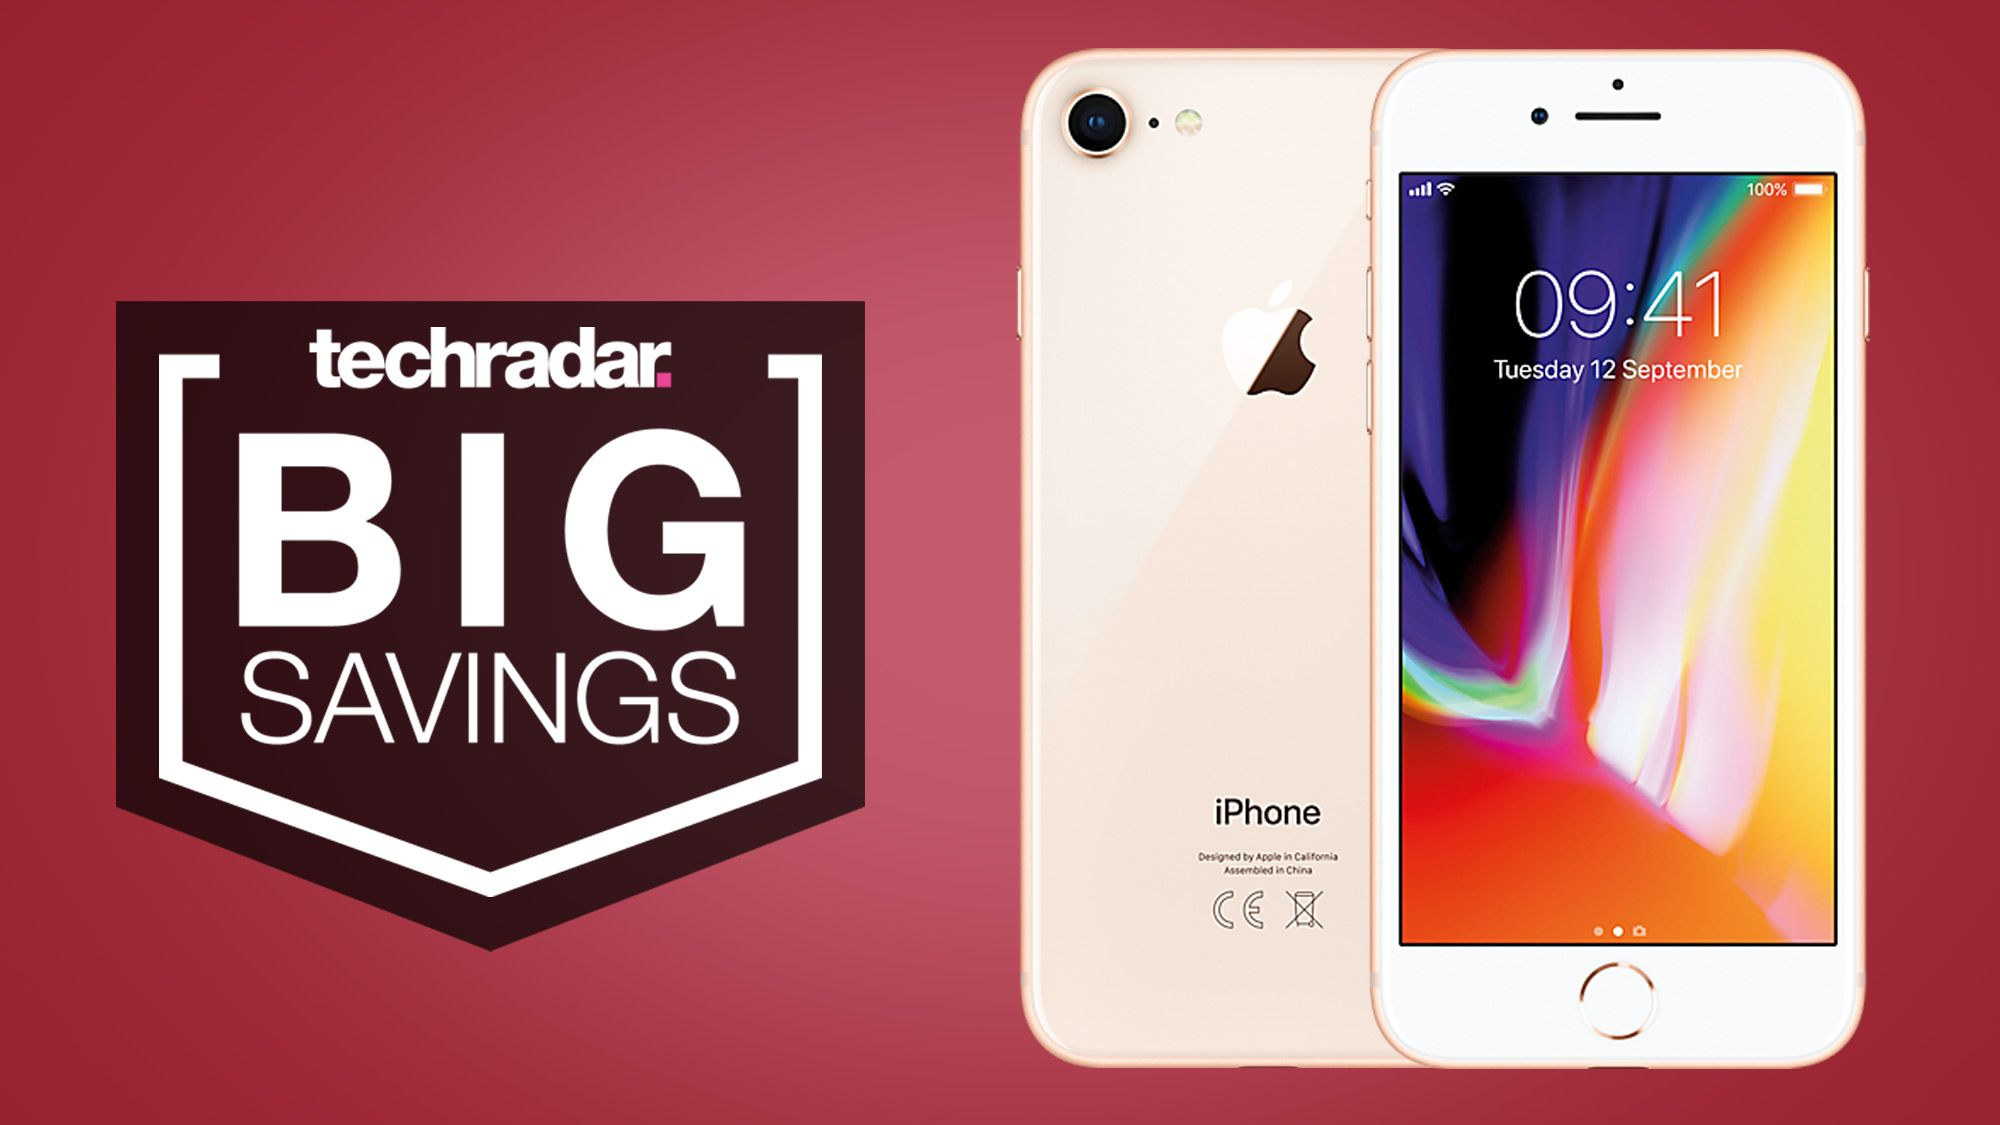 These Iphone 8 Deals Are The Perfect Mid Range Option To Kick Off The January Sales Cheap Iphones Iphone Price Iphone Deals